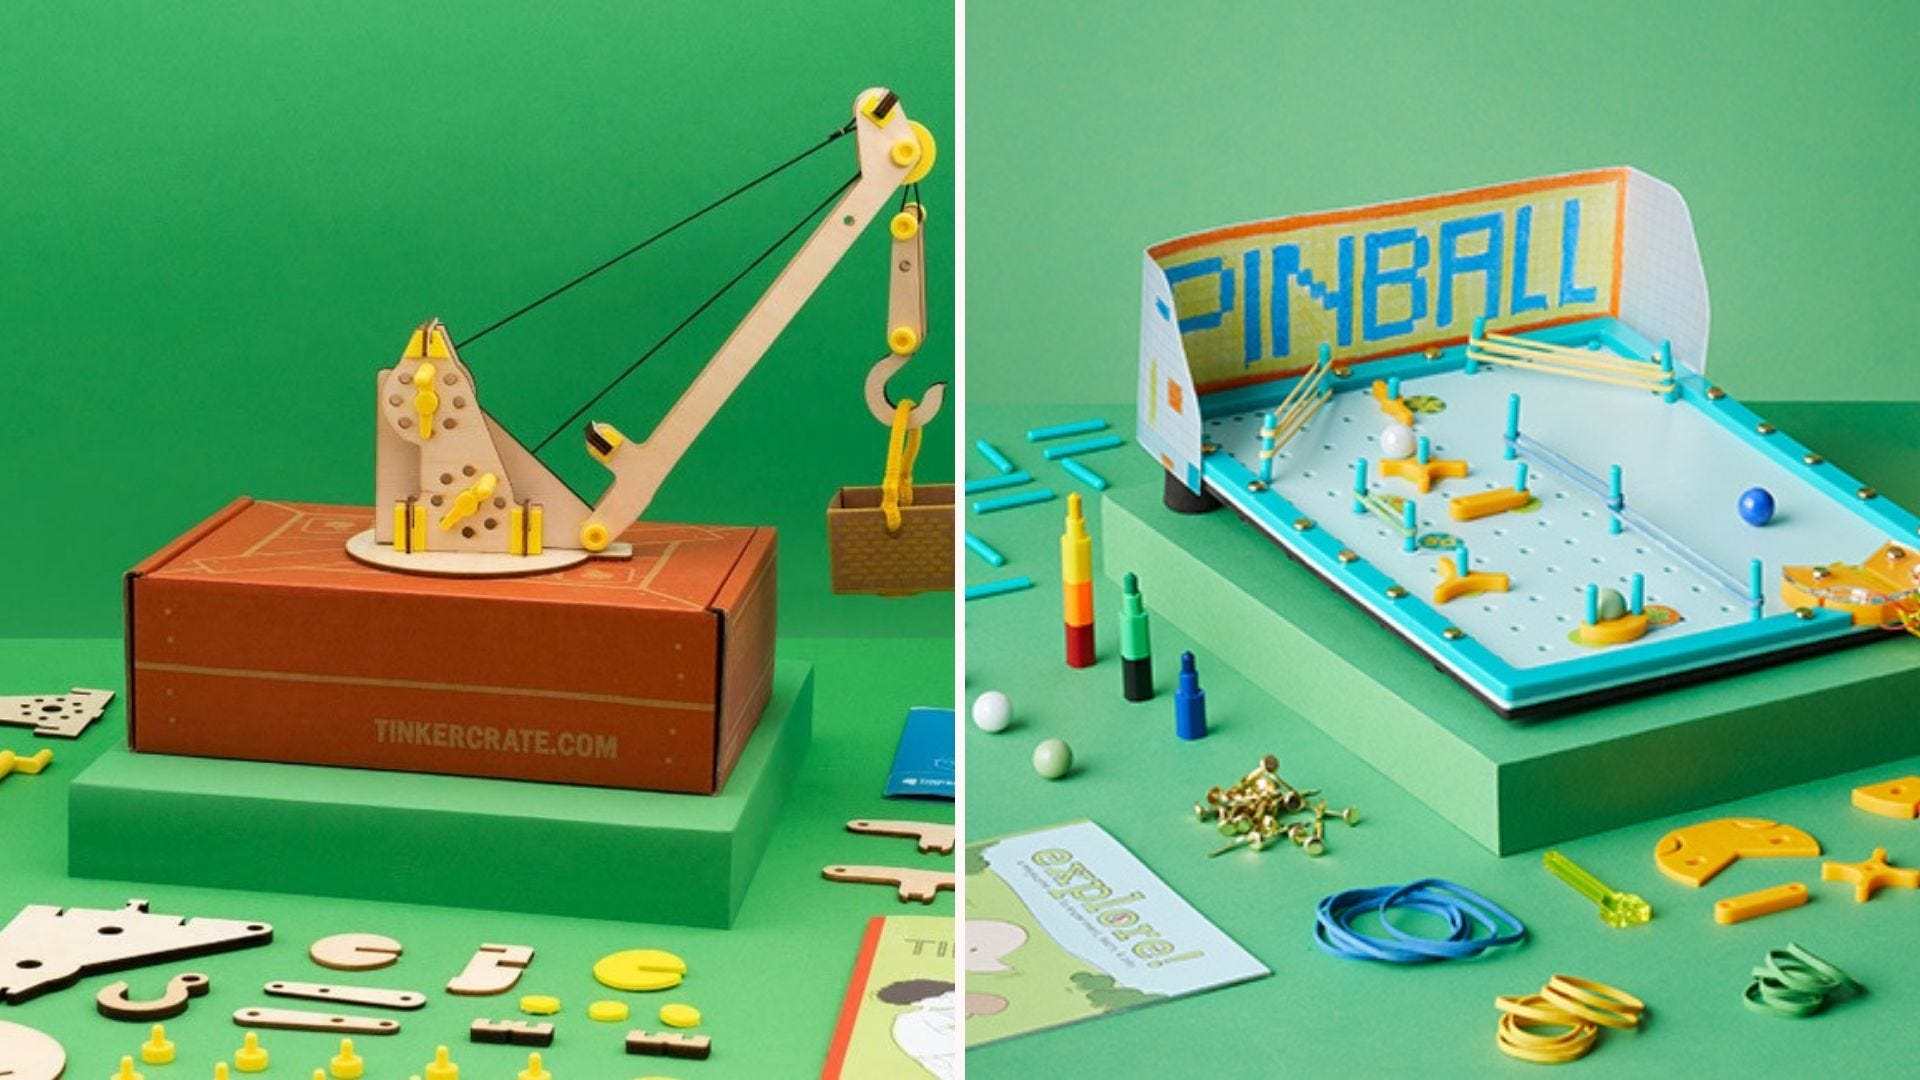 A mini crane and a pinball game, with parts around them, on green backgrounds